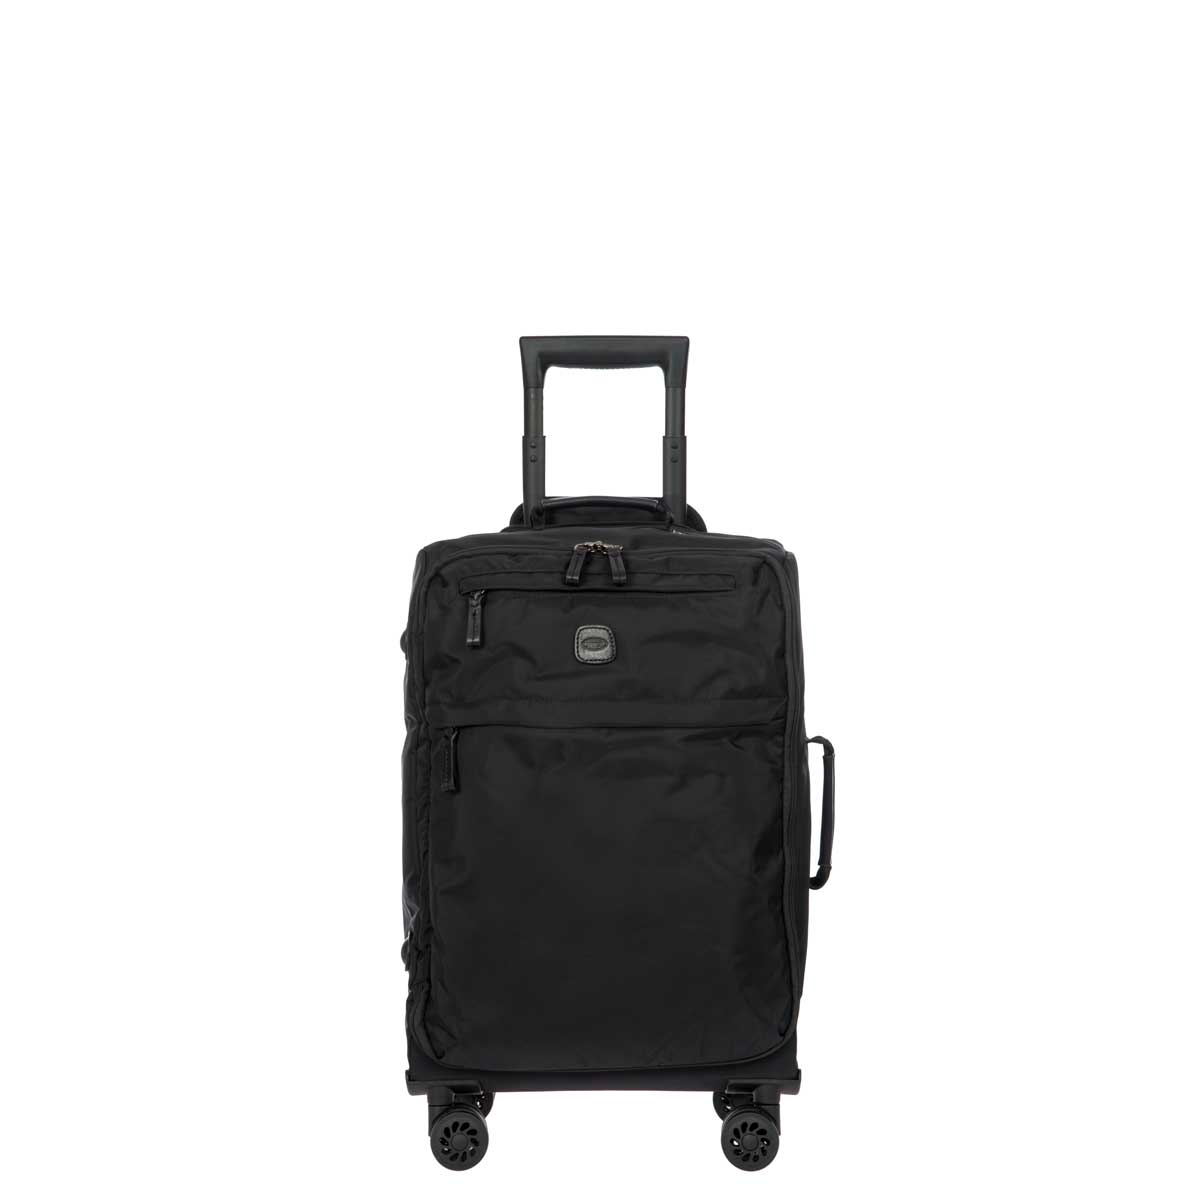 "X-Travel 21"" Spinner W / Frame by Brics (Color: Black /Black)"